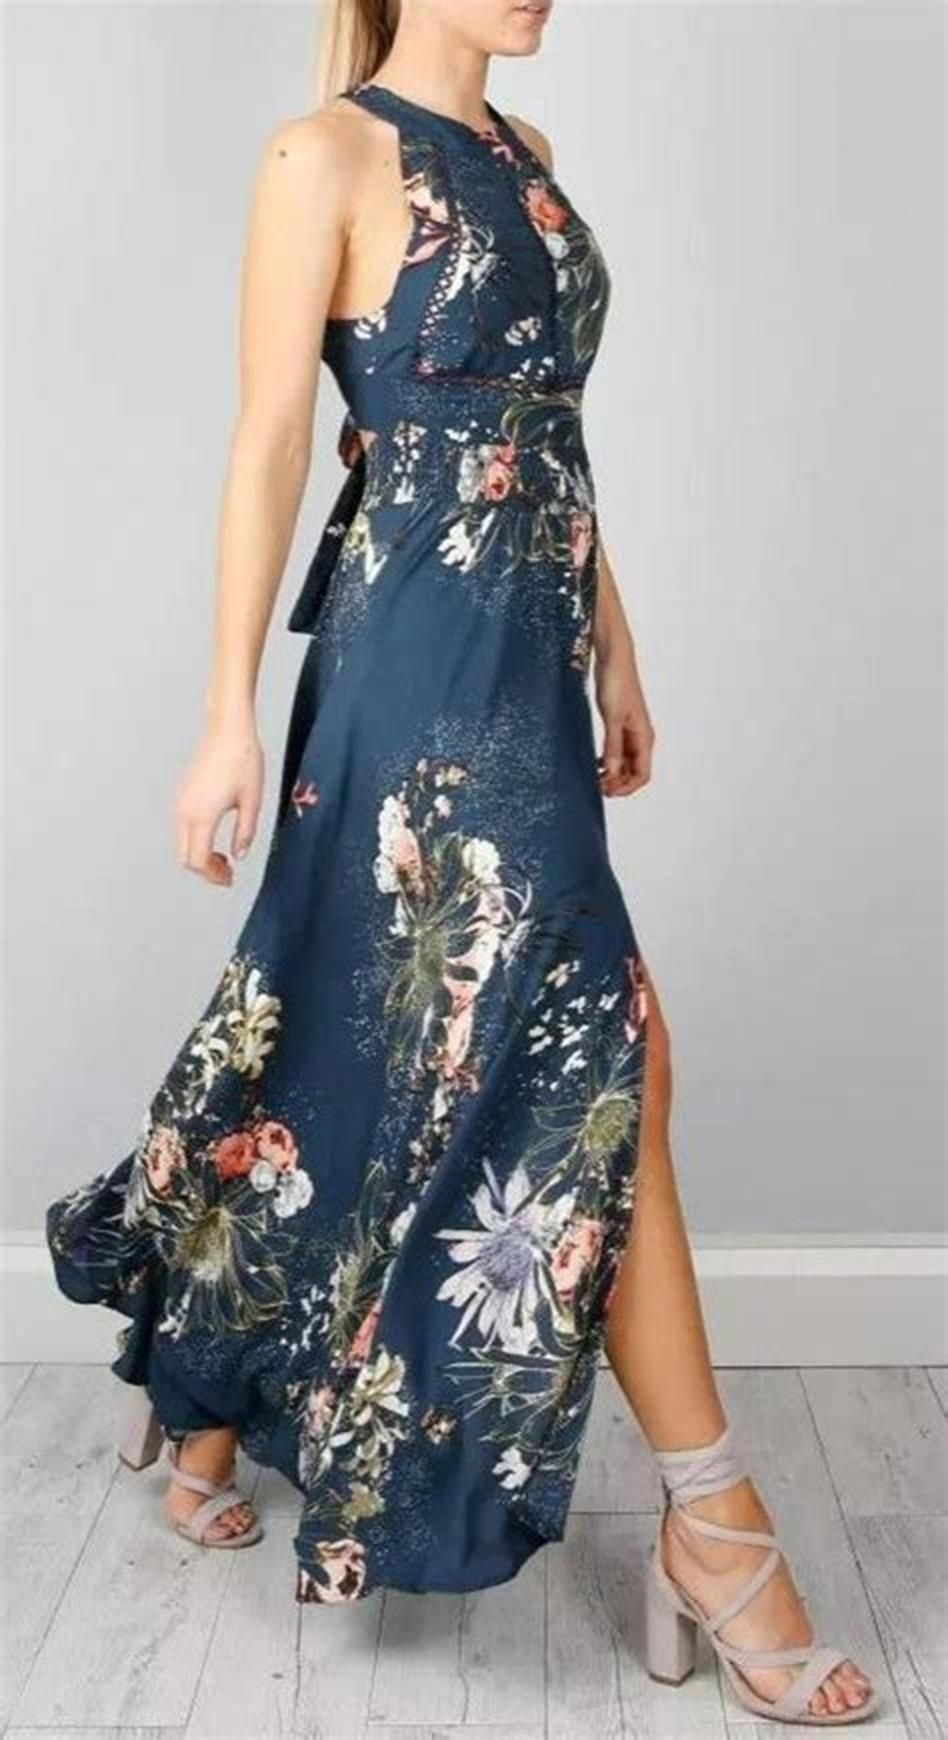 40 beautiful spring wedding guest dresses for 2019 27